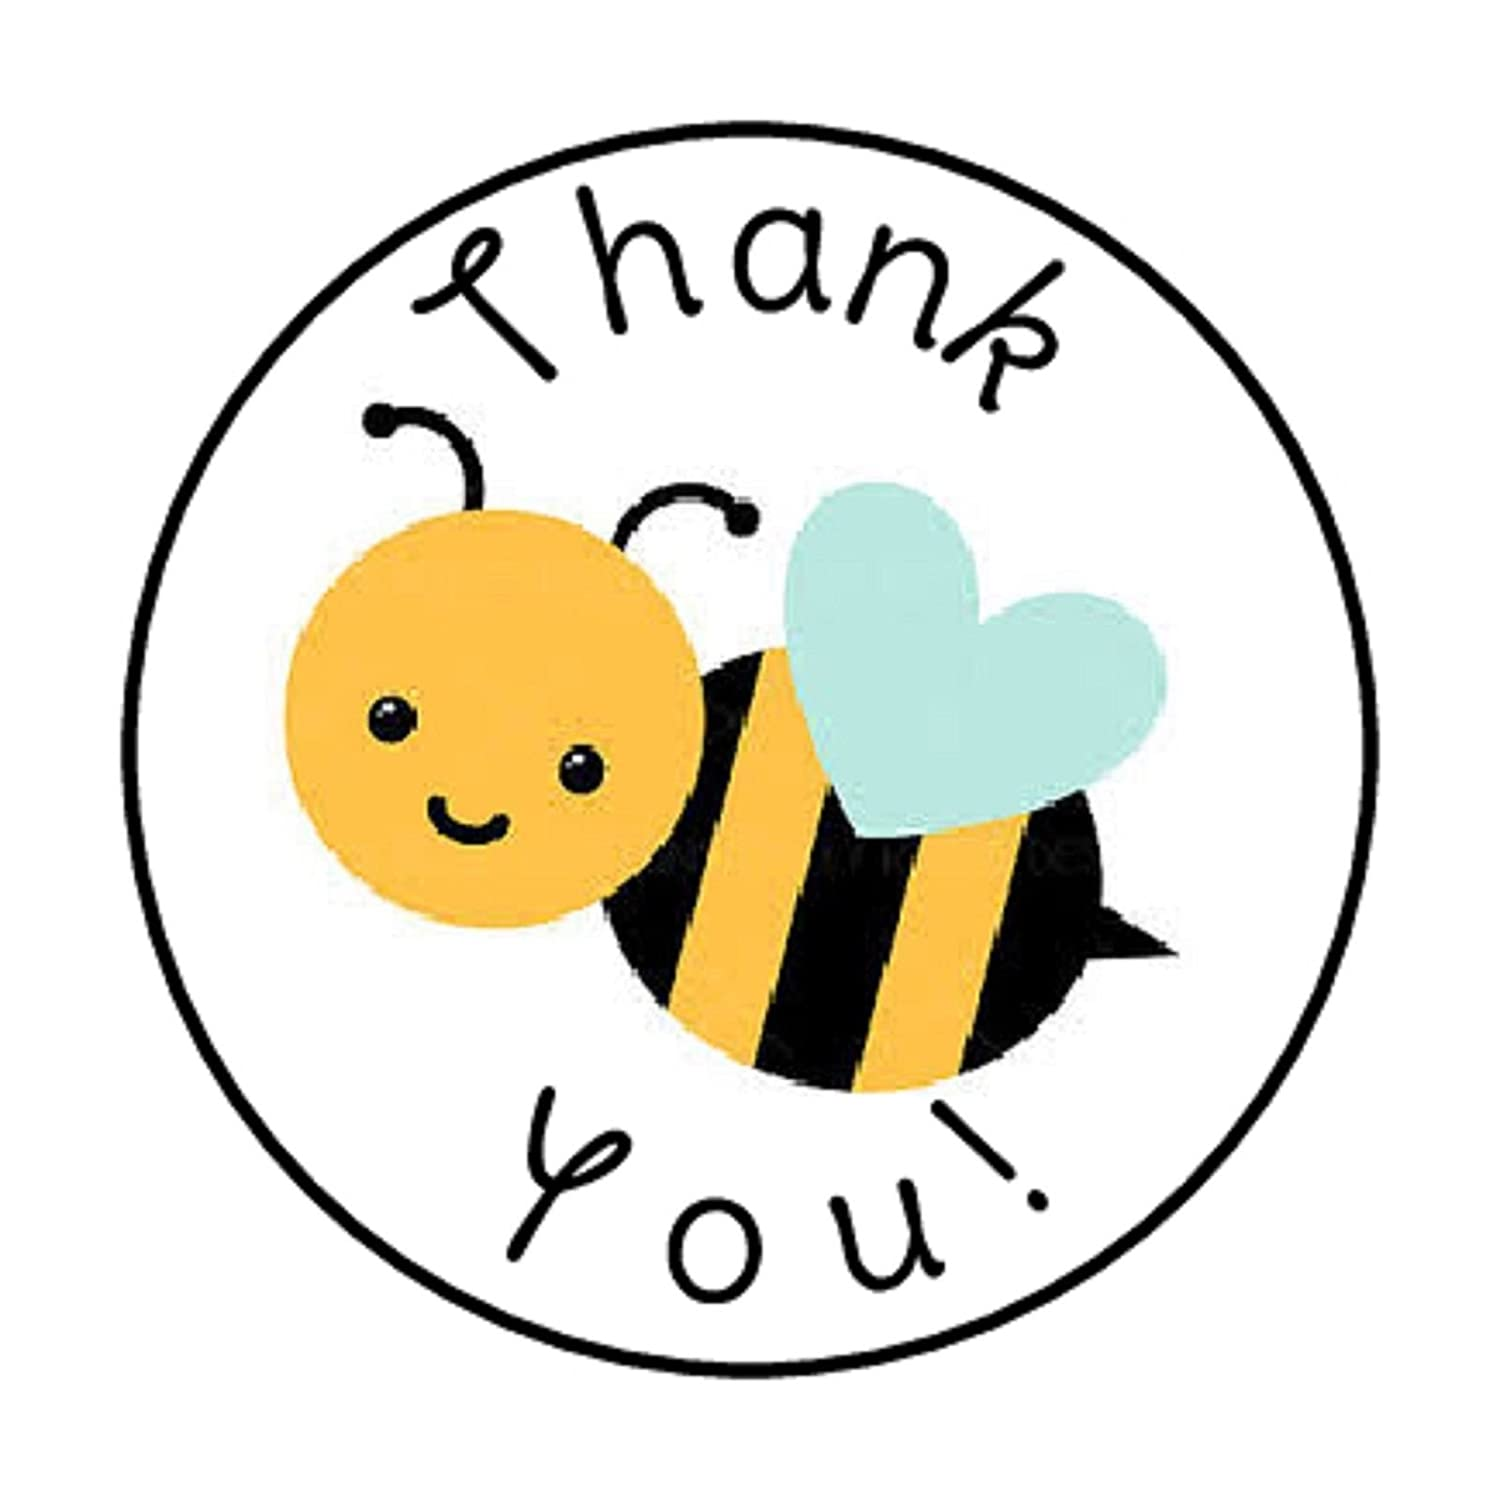 Round Labels Seals for Envelopes Decorative Bumblebee Decal Set 48 Mini Honey Bumble Bees Sticker